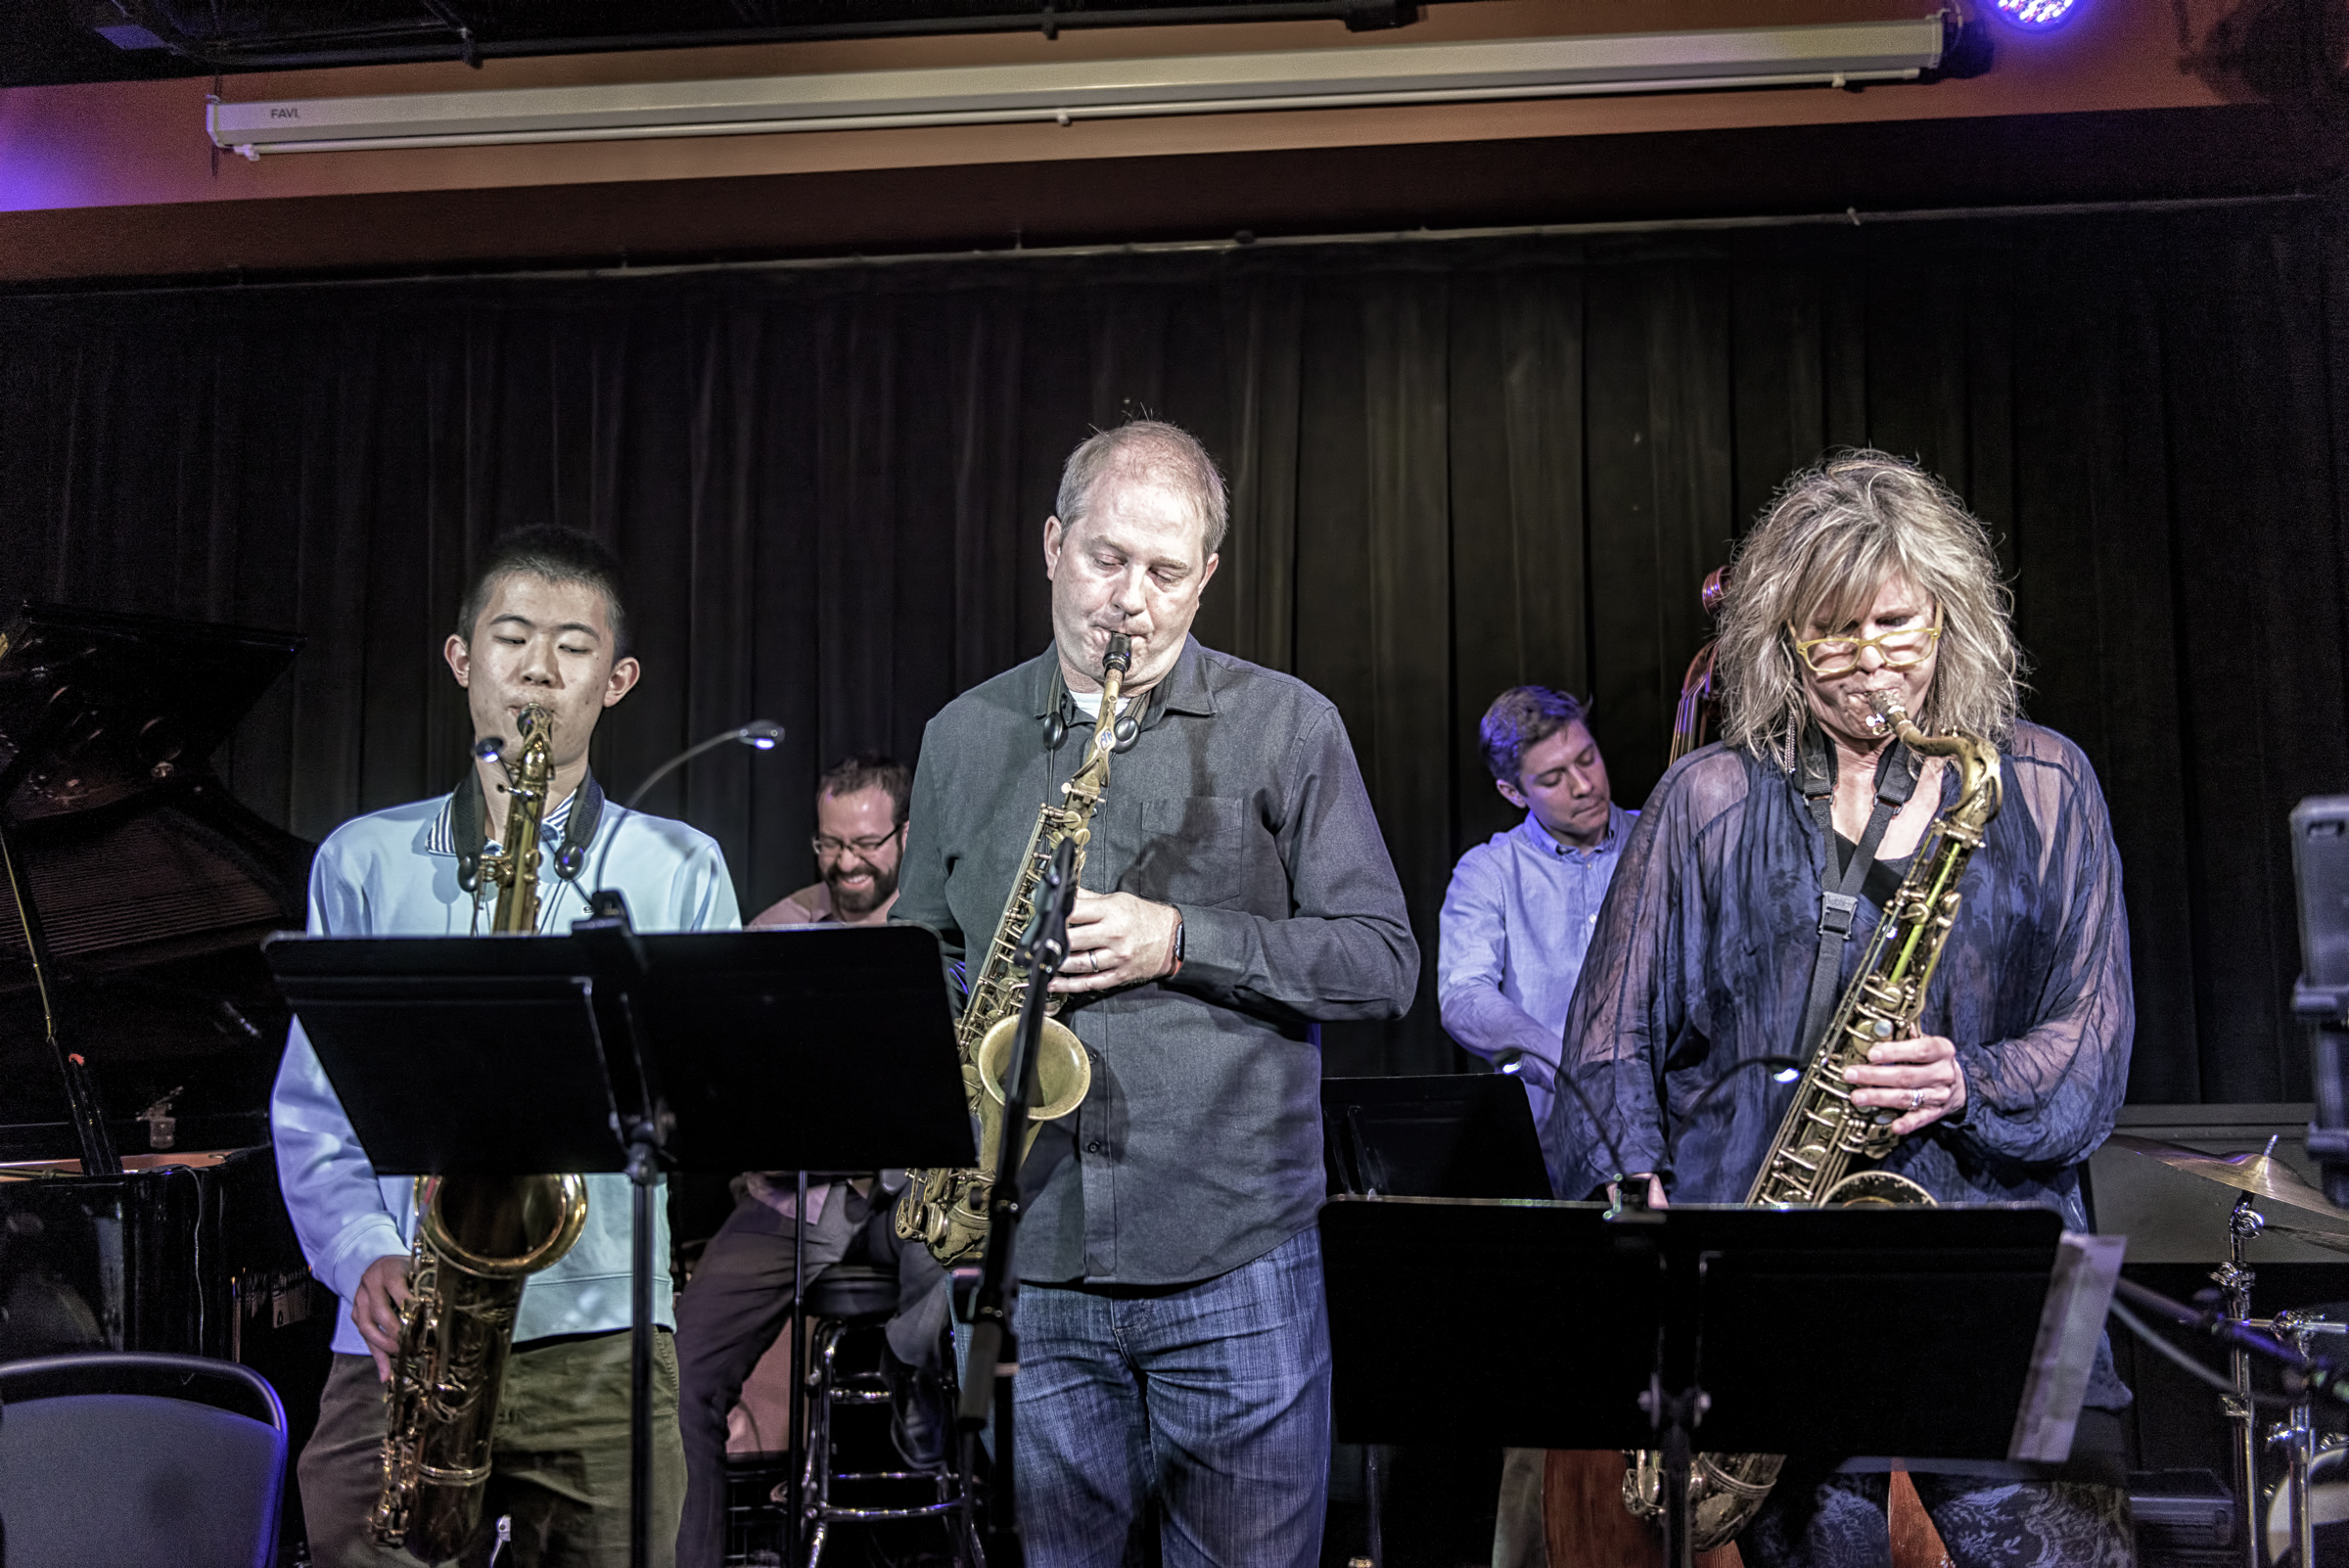 Alex Yuwen, Will Goble, Mary Petrich, Eric Rasmussen, And Jeff Libman With Will Goble's Audiodrama Octet At The Nash